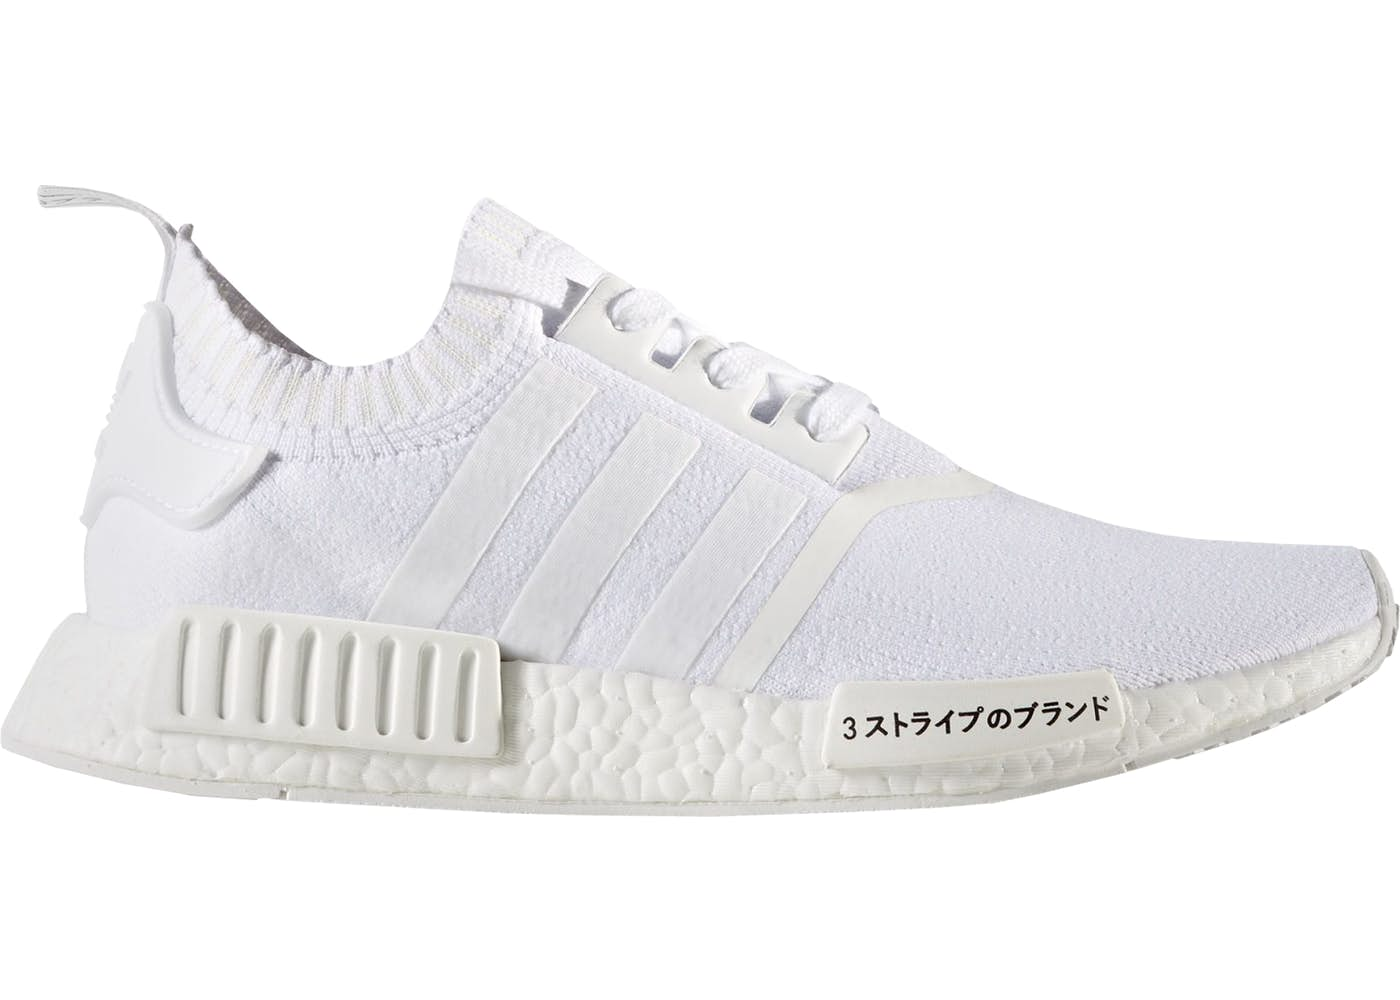 "Adidas NMD R1 PK ""Japan Boost"" (Triple White)"